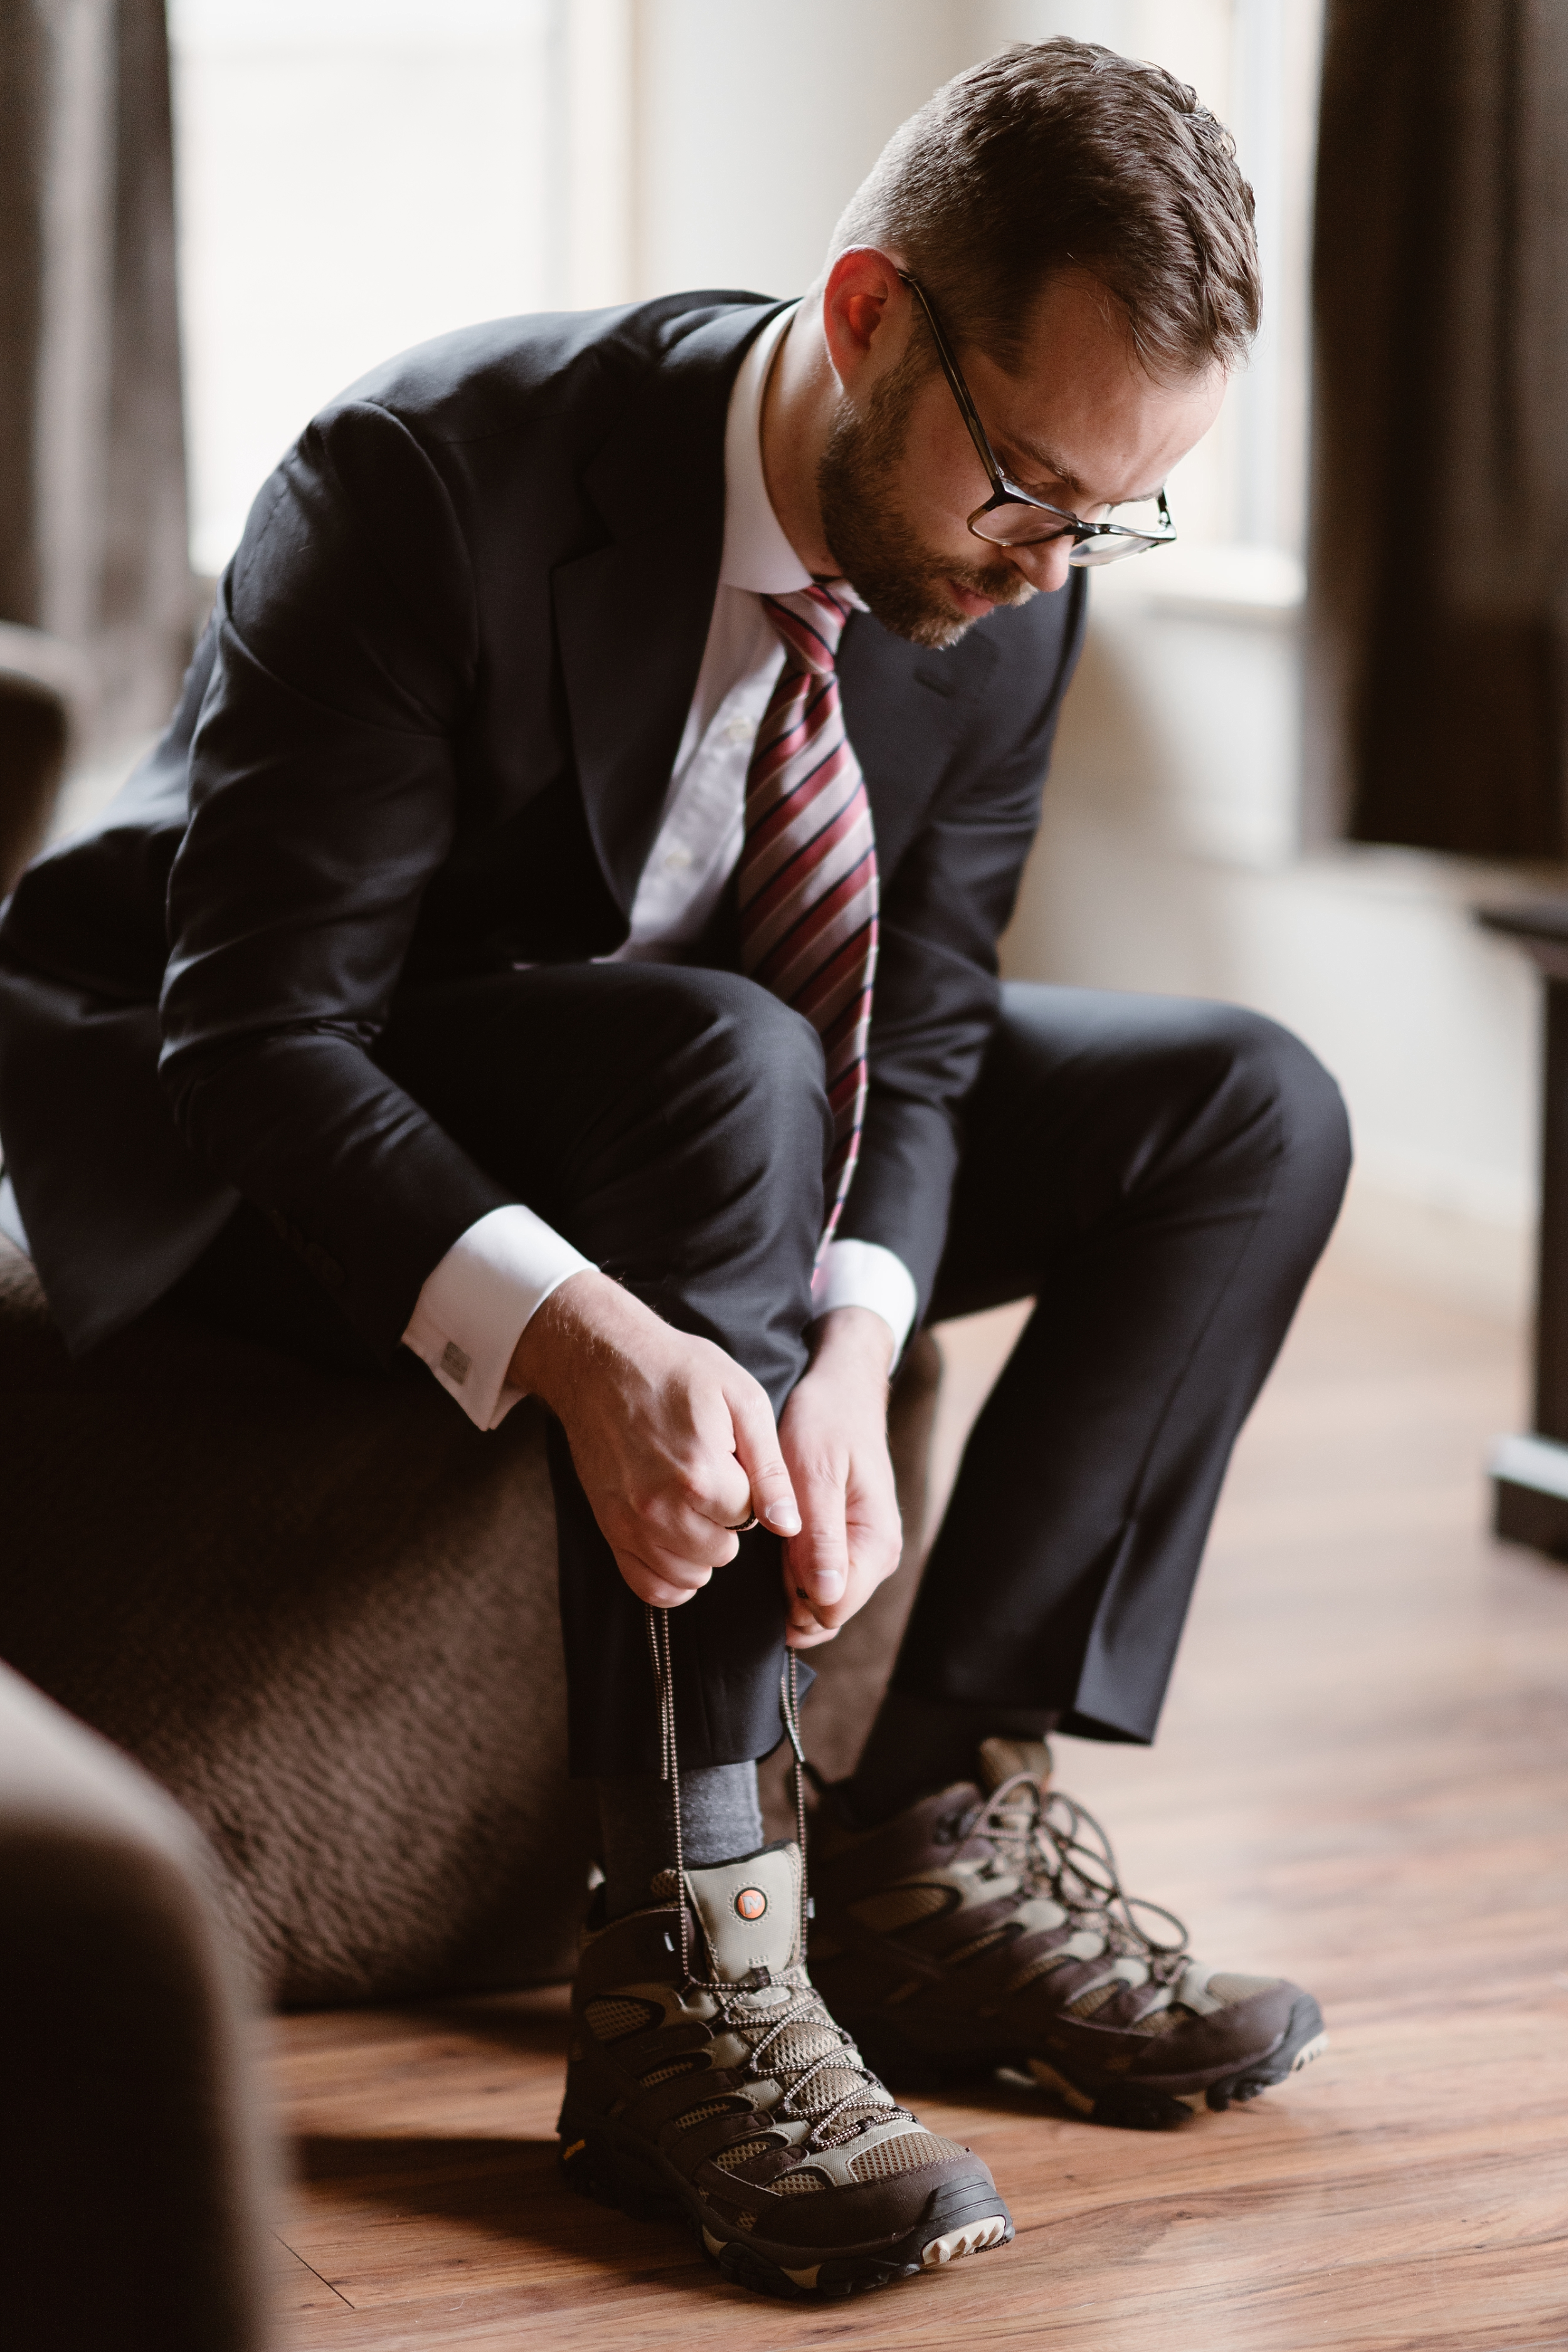 Logan, the groom laces up his hiking boots in his Ouray, Colorado Airbnb as he prepares for his Colorado mountain wedding to his bride, Katie. He sits on a brown leather stool as he pulls the laces up tight to ties his boots, revealing a grey sock underneath.